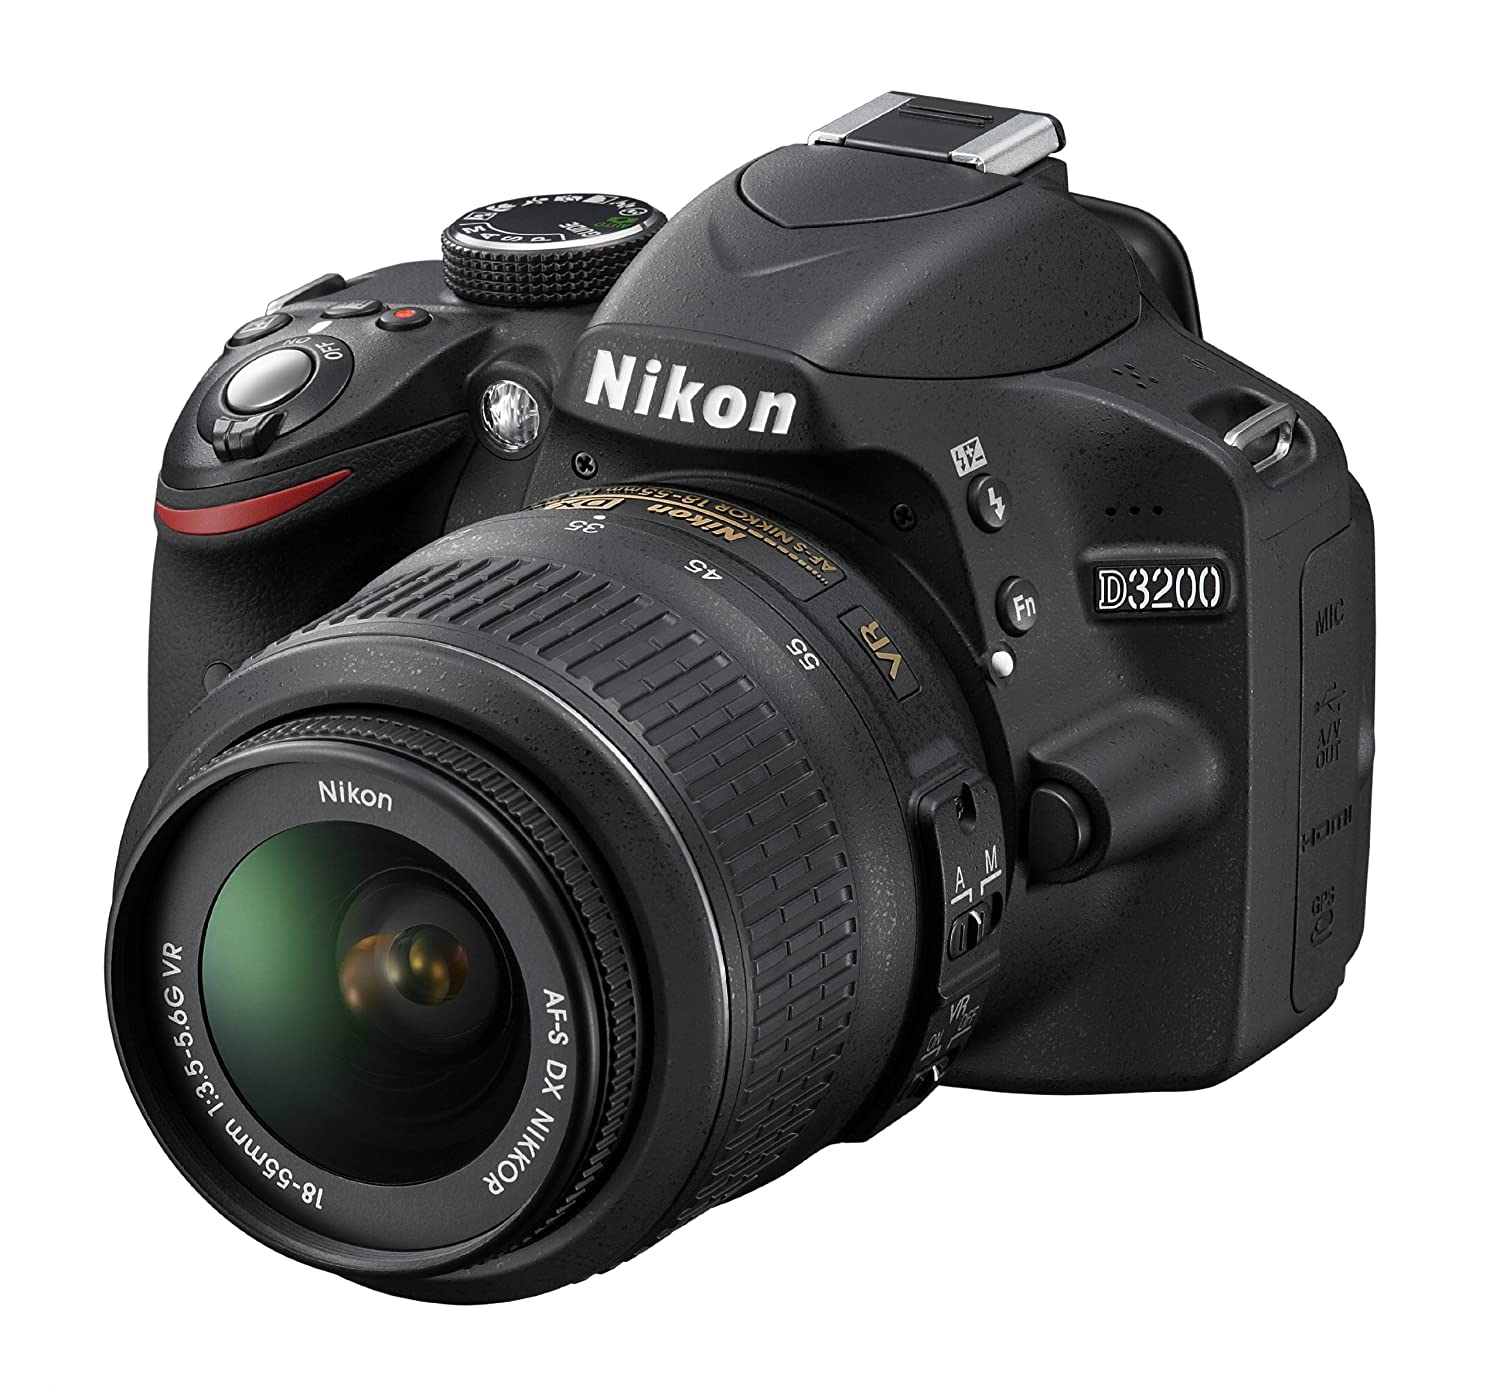 Nikon D3100 Digital SLR Review